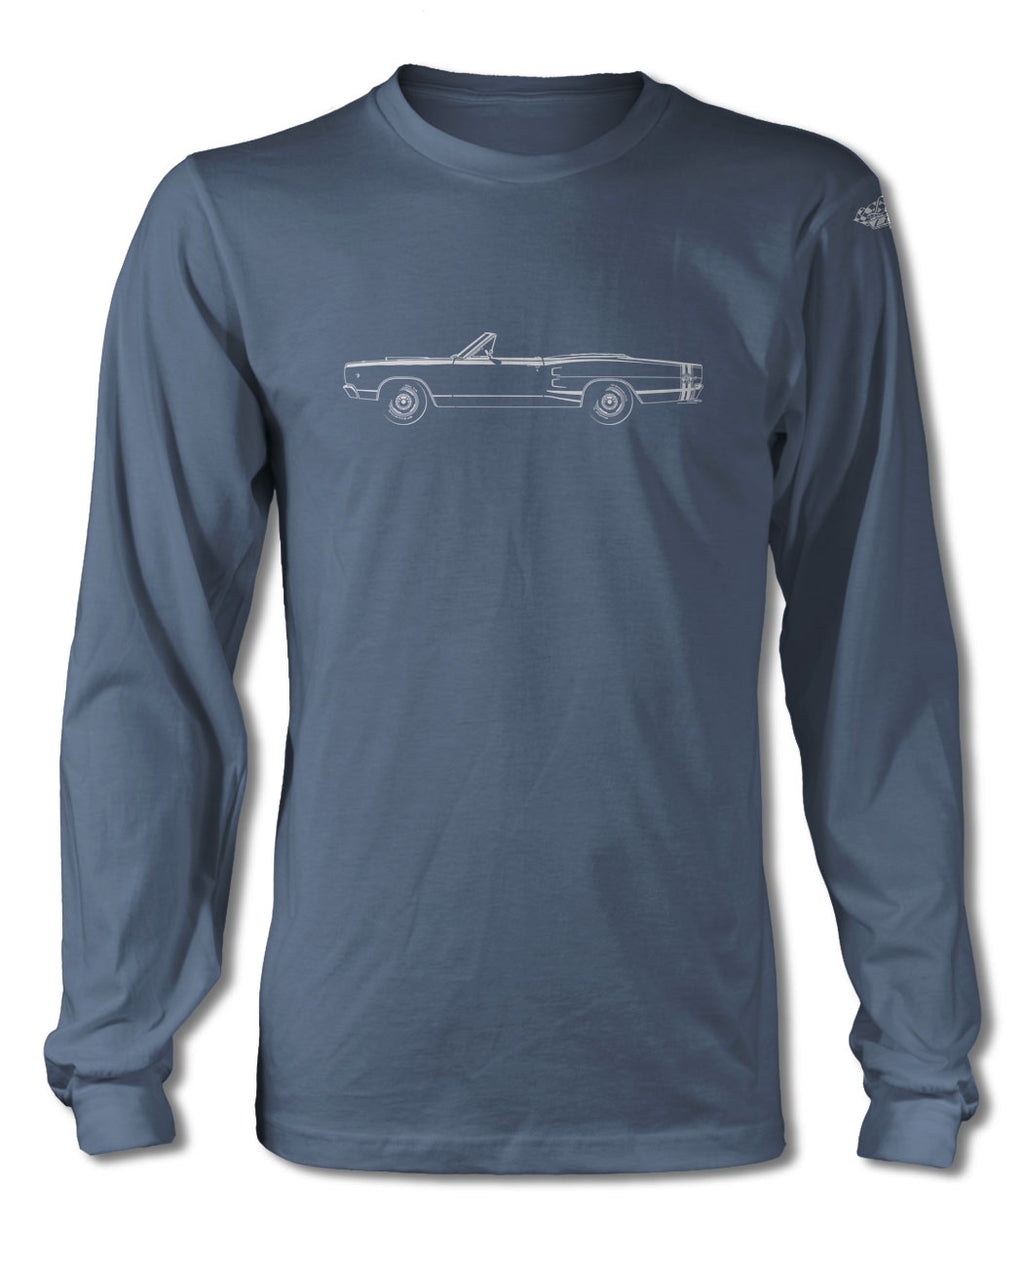 1968 Dodge Coronet Super Bee Convertible T-Shirt - Long Sleeves - Side View